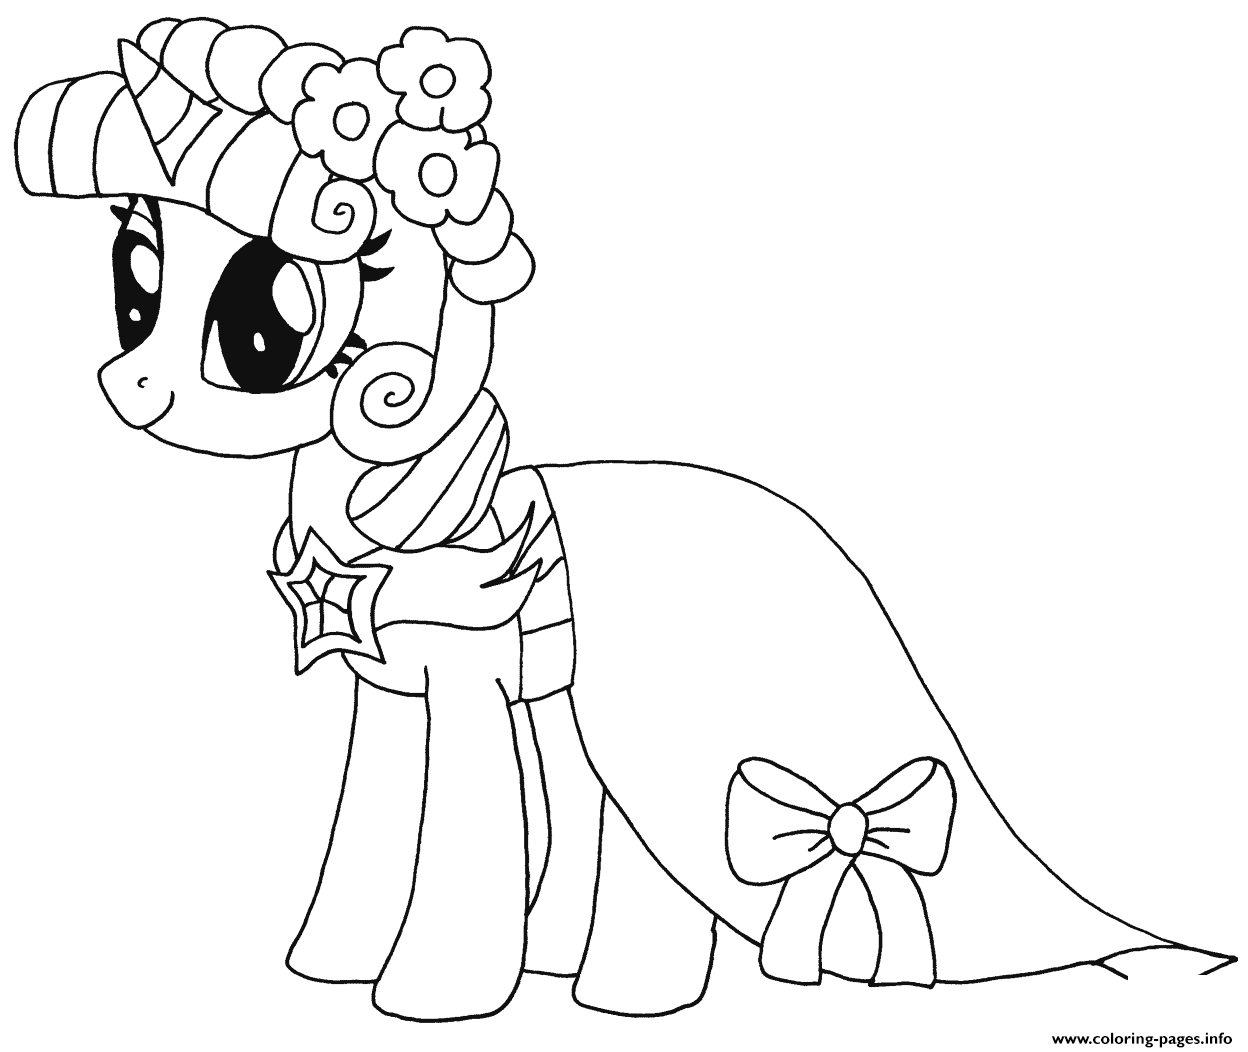 My little pony coloring pages for kids free - Princess Twilight Sparkle My Little Pony Coloring Pages